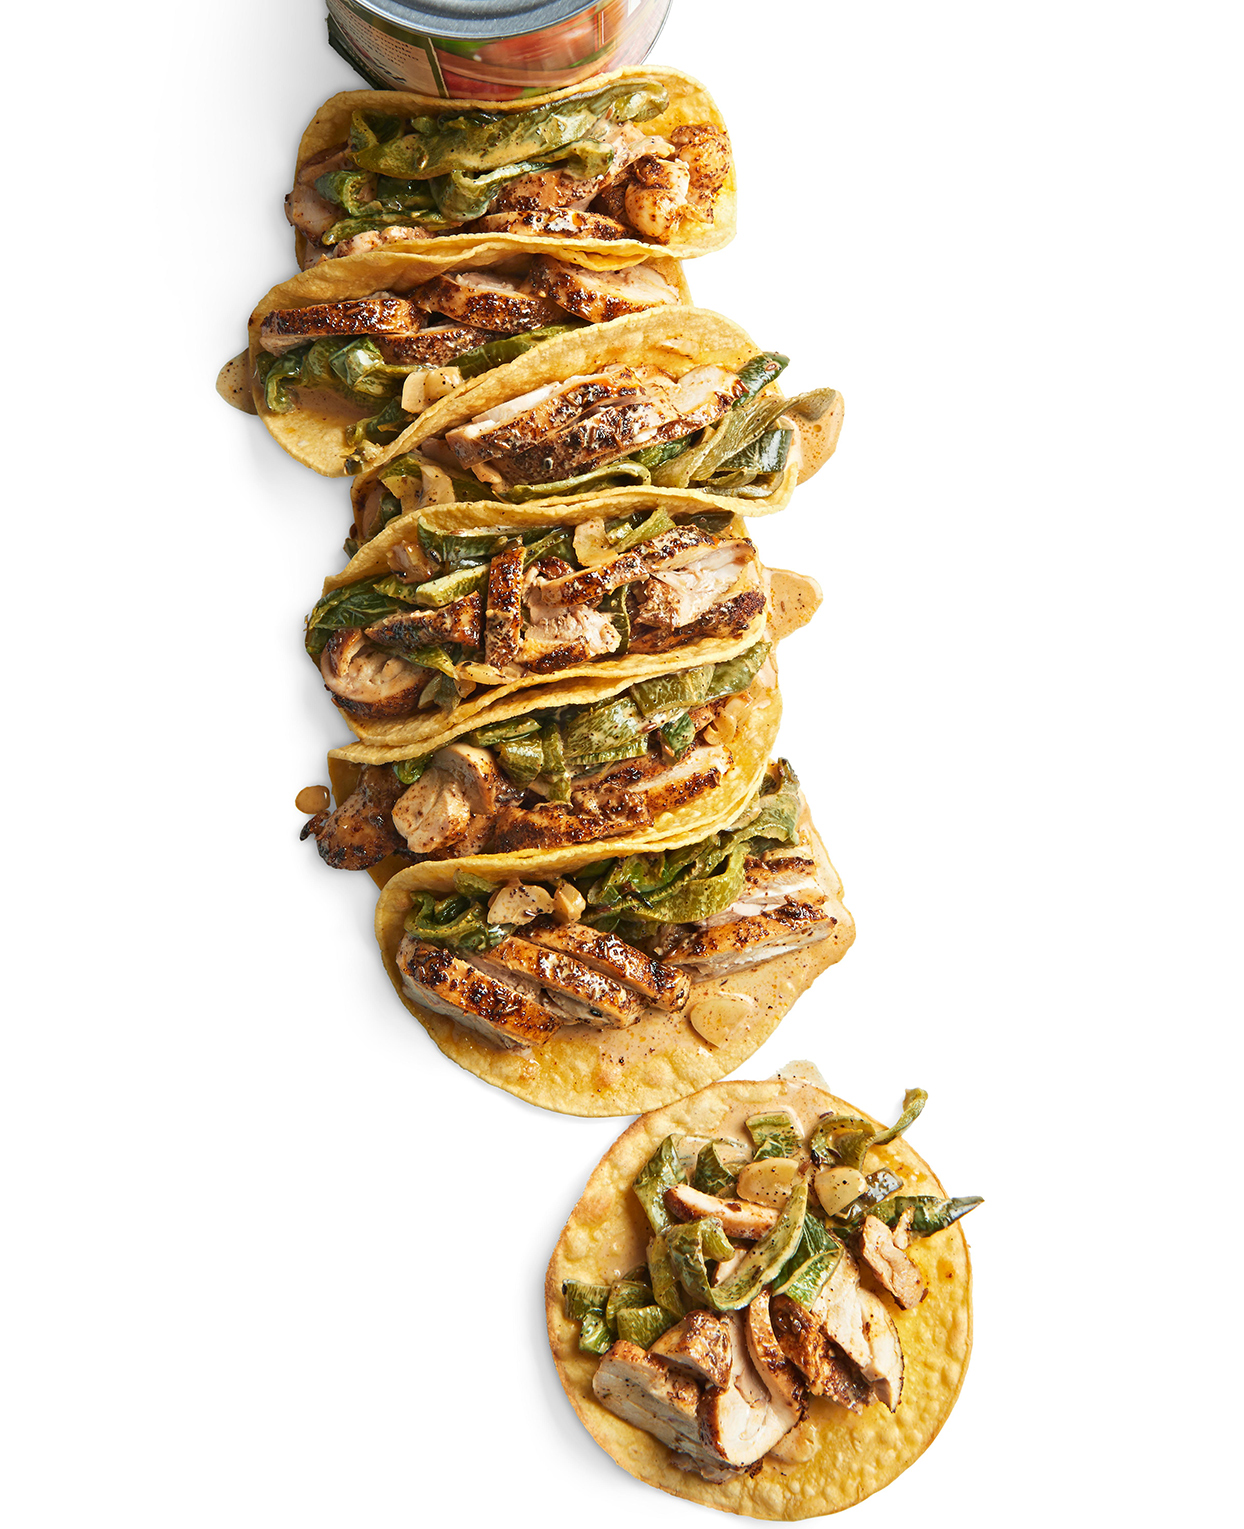 Spice-Rubbed Chicken and Poblano Tacos